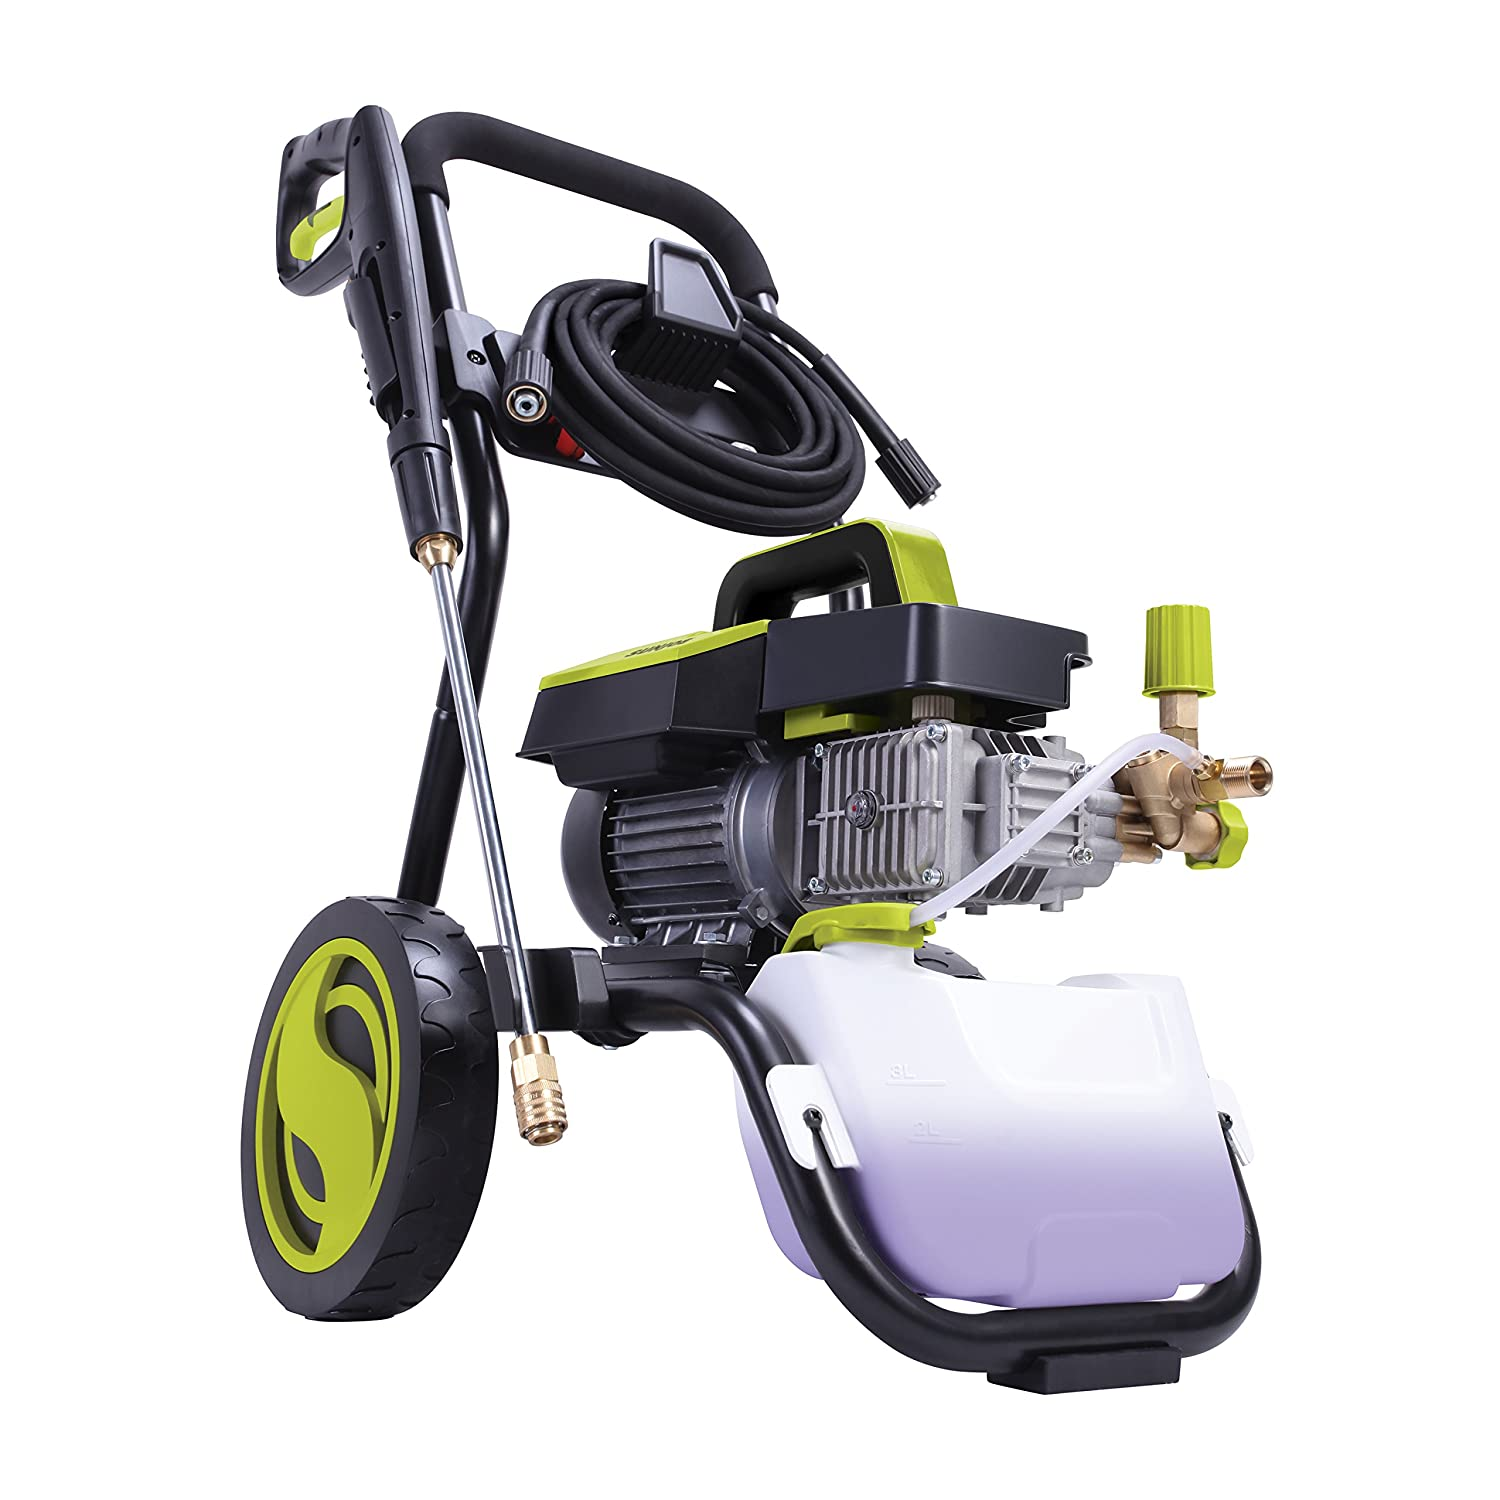 Amazon.com : Sun Joe SPX9005-PRO Commercial Series 1300 PSI 2 GPM Max 2.15 HP Brushless Induction Motor Pressure Washer, w/Wall Mount and Roll Cage : Garden ...